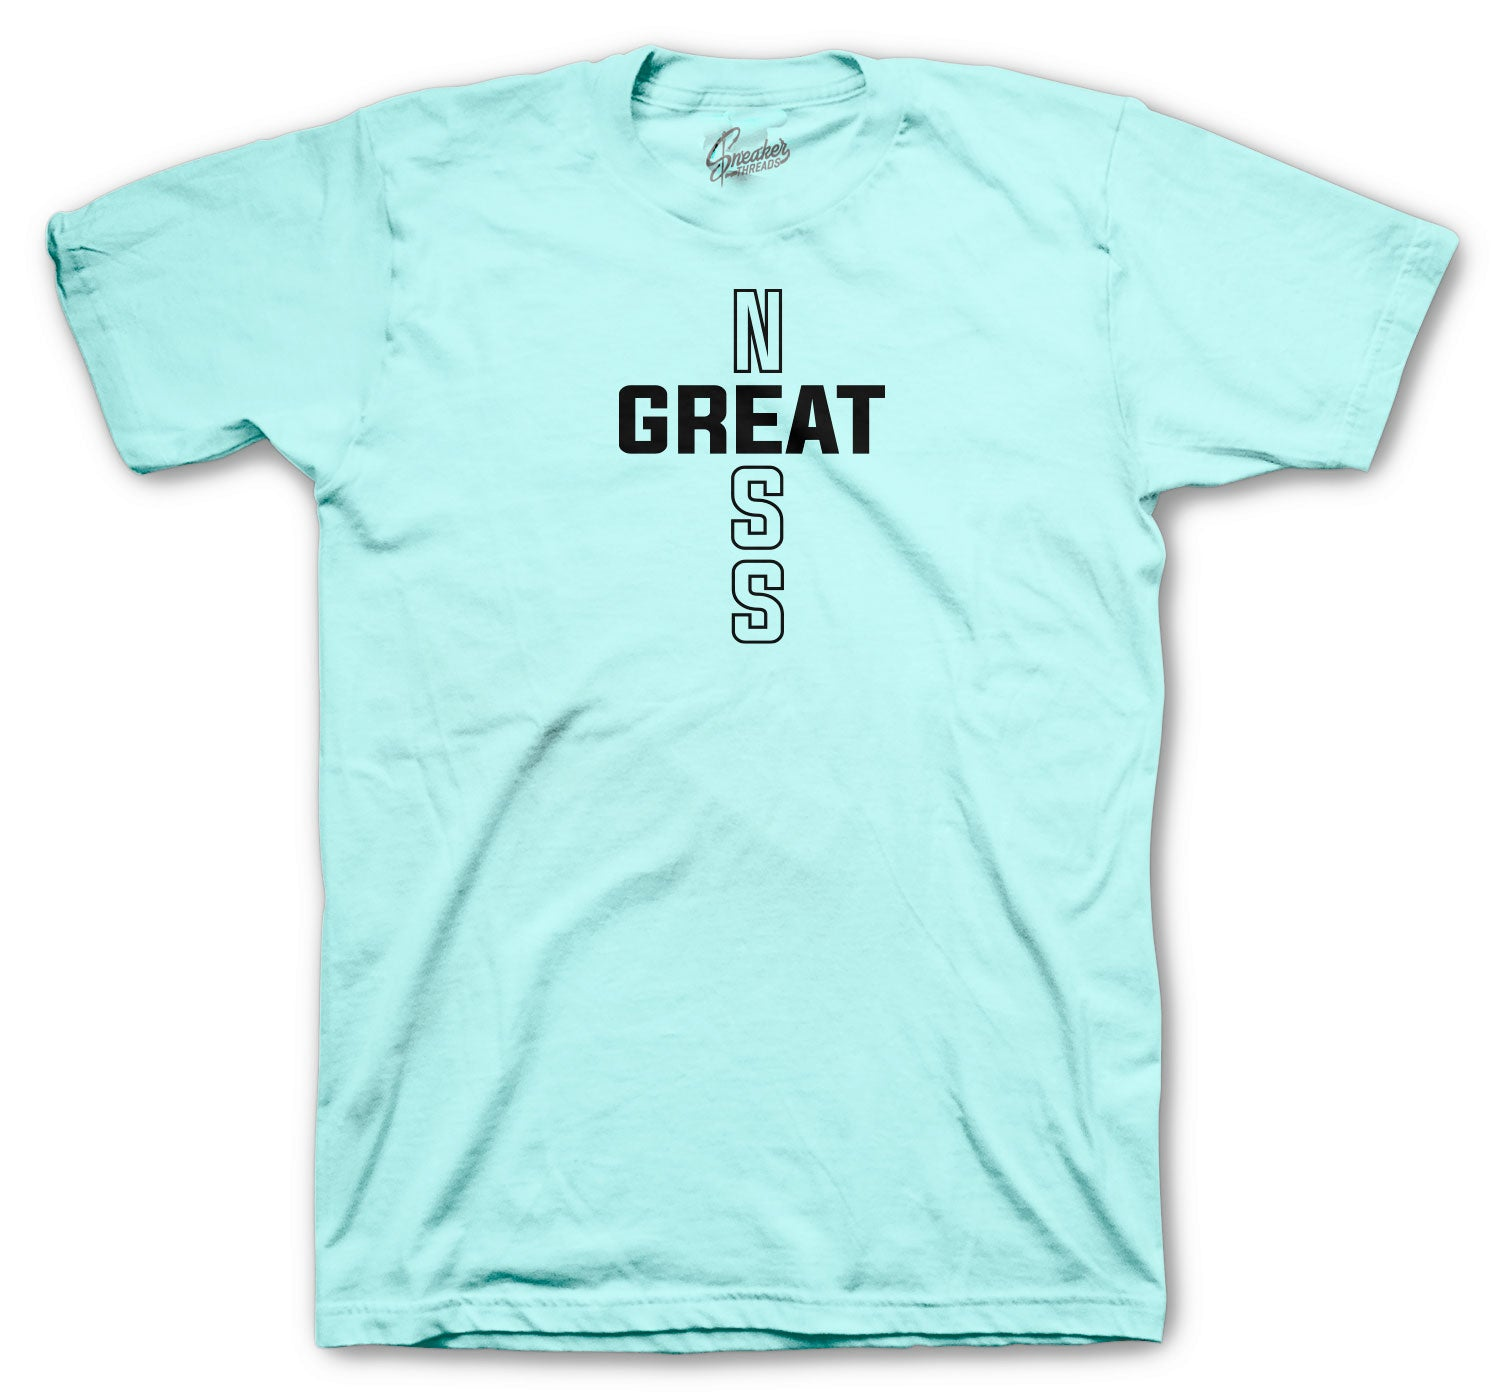 Jordan 12 Easter Shirt - Greatness Cross - Green